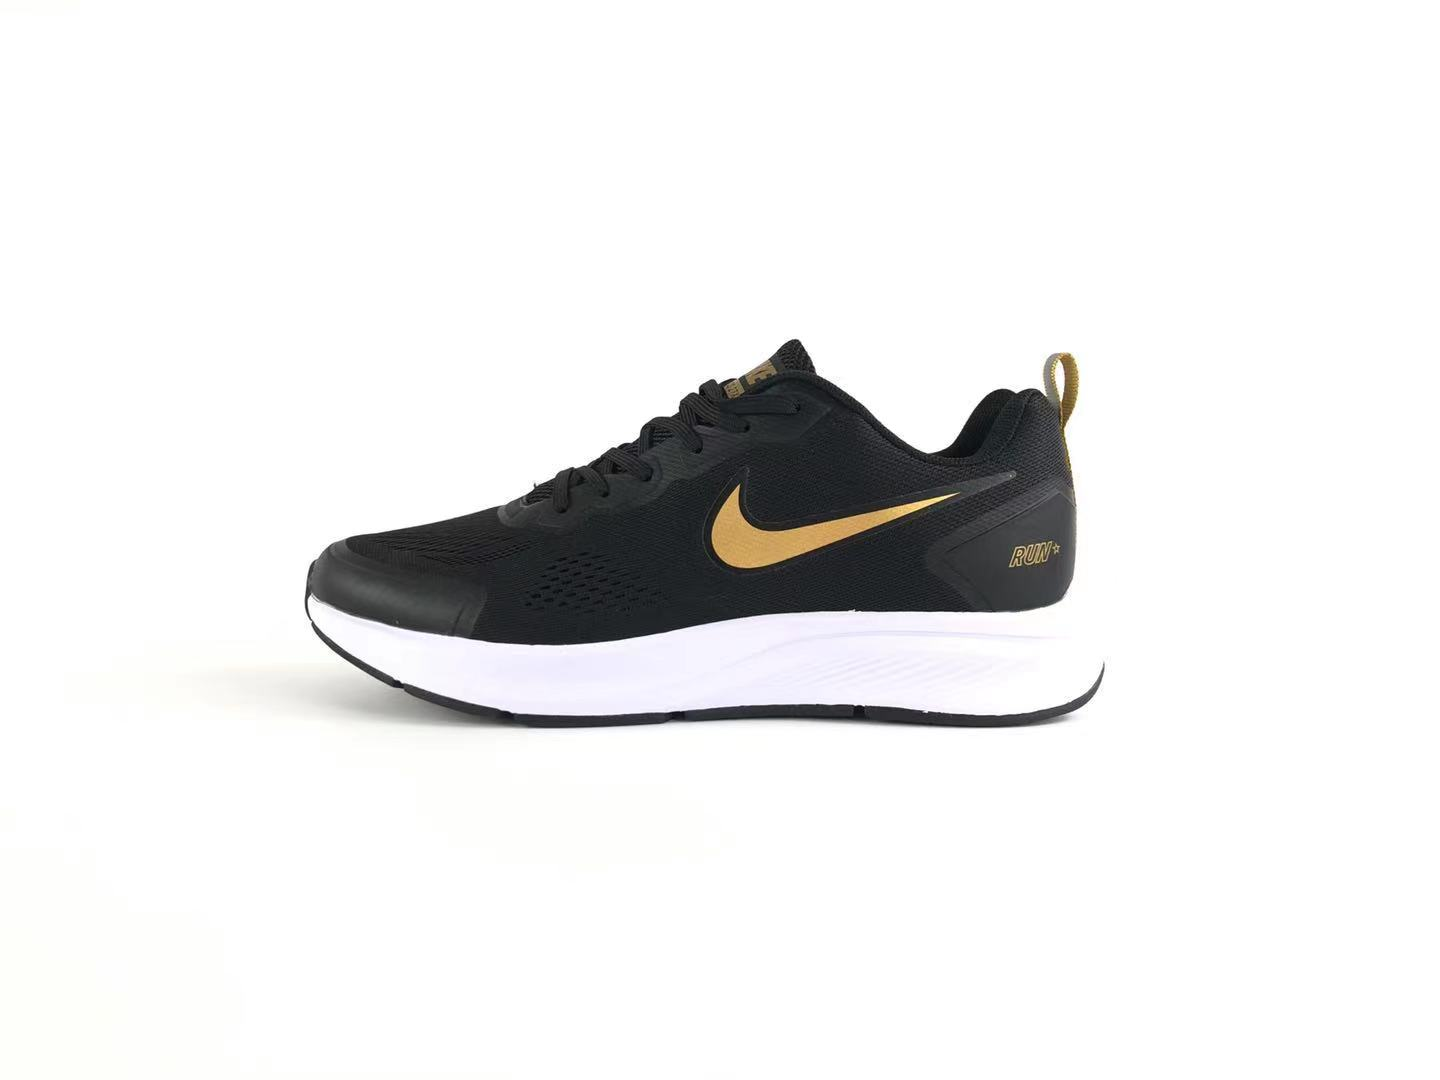 NIKE AIR ZOOM 27 generation jacquard breathable running shoes Left